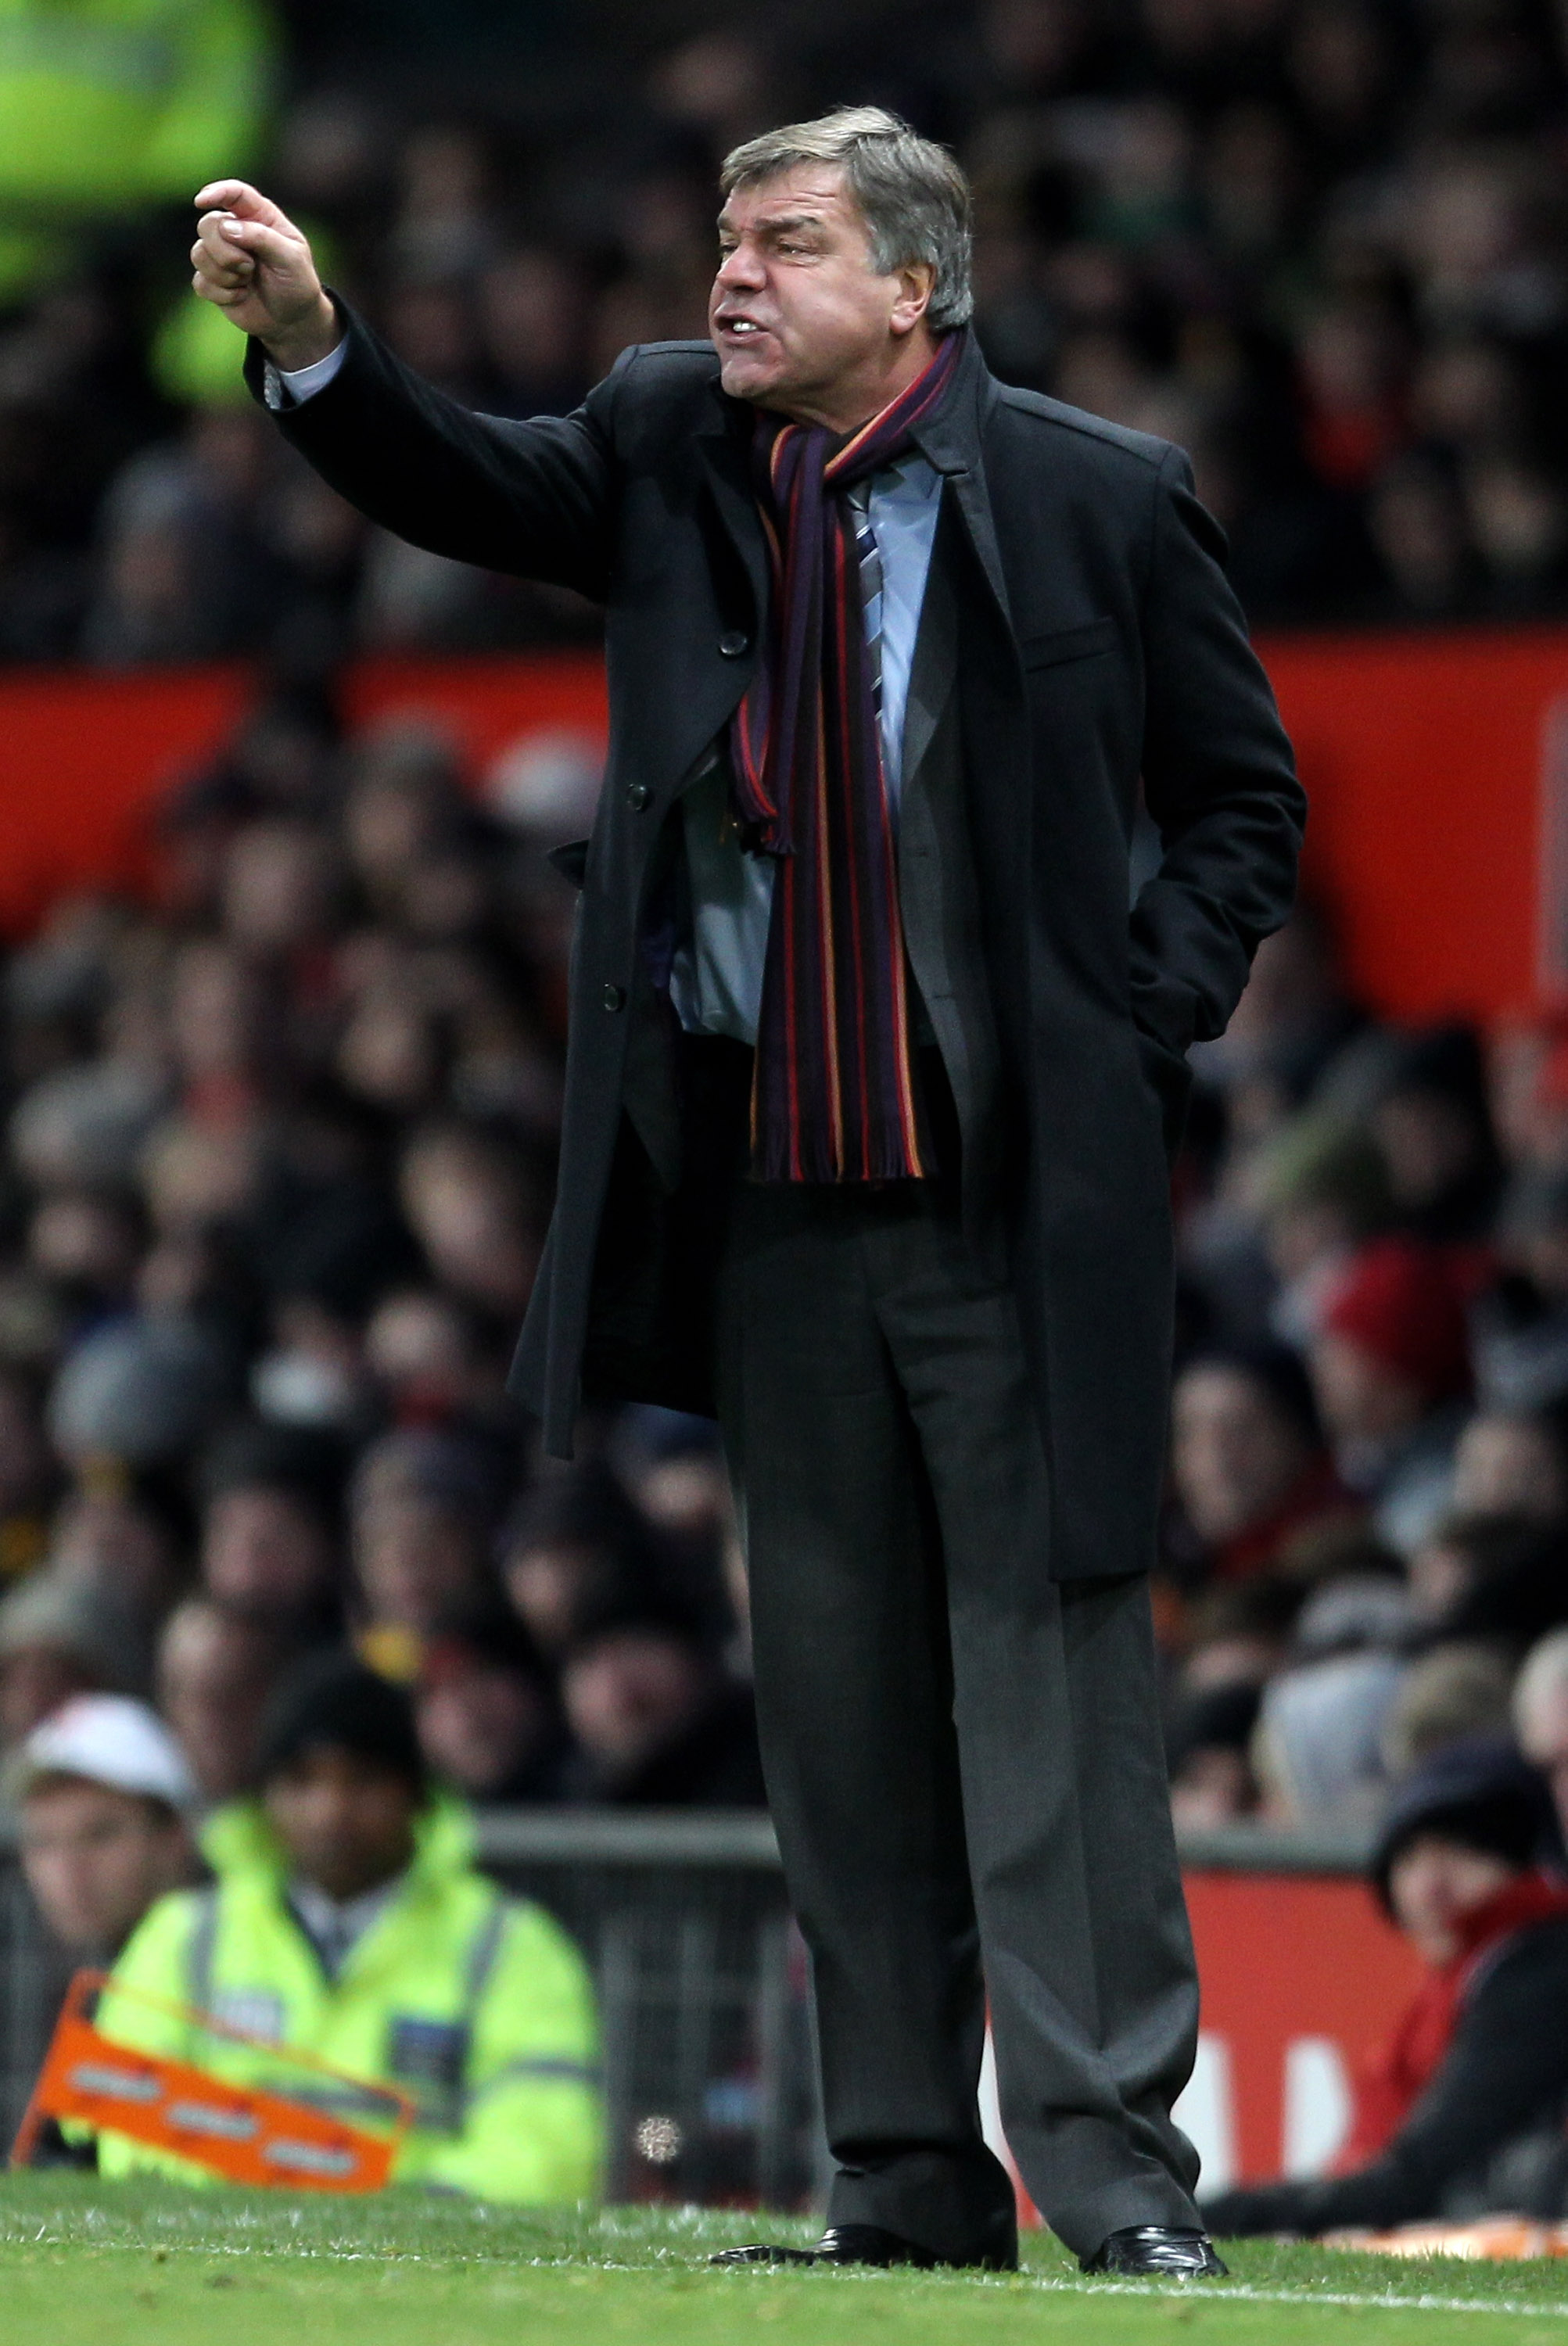 MANCHESTER, ENGLAND - NOVEMBER 27:   Blackburn Rovers Manager Sam Allardyce issues instructions during the Barclays Premier League match between Manchester United and Blackburn Rovers at Old Trafford on November 27, 2010 in Manchester, England. (Photo by